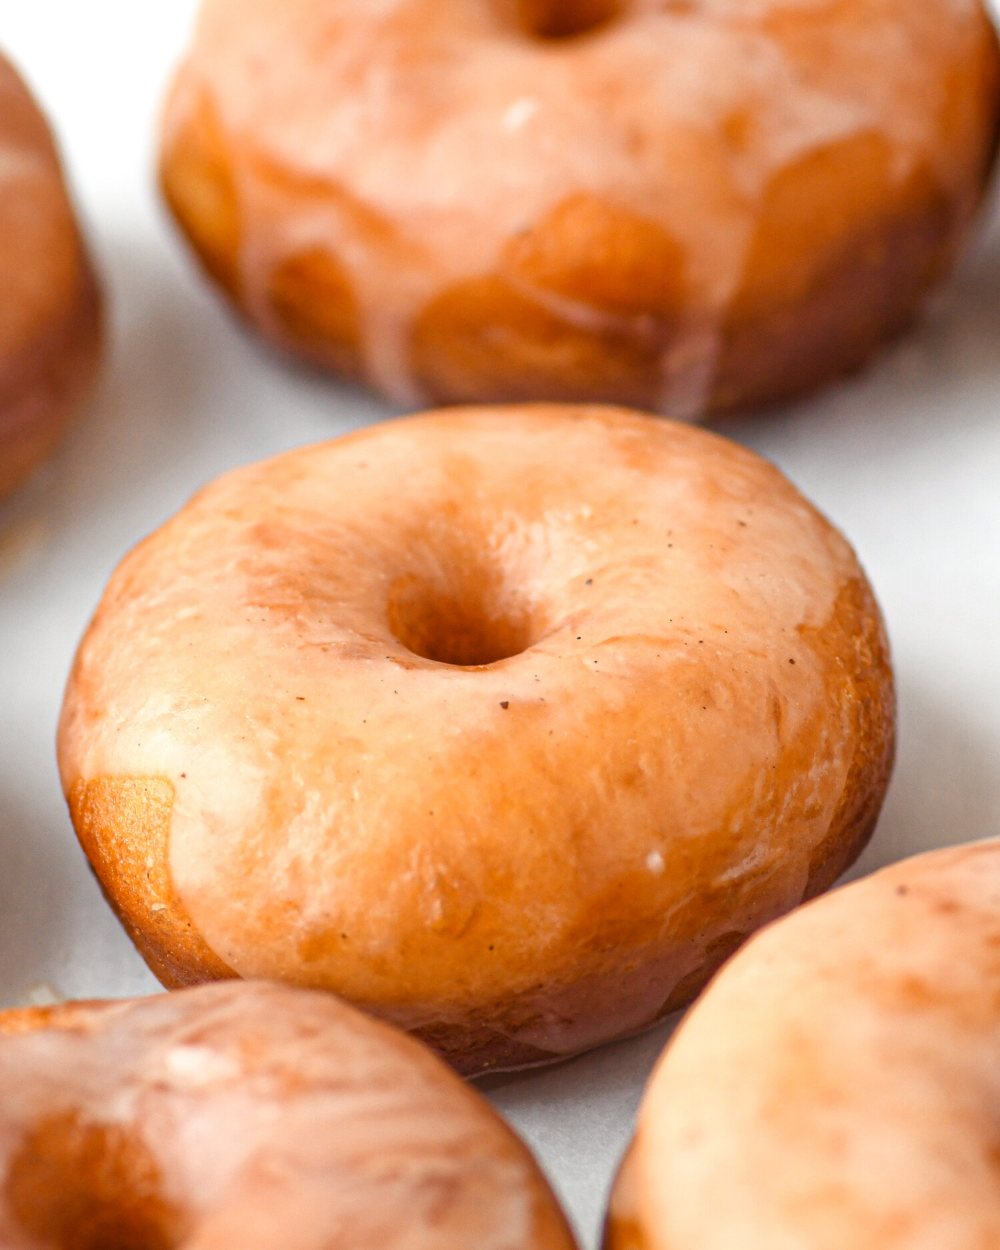 Buttermilk Donuts In 2020 Buttermilk Recipes Donut Toppings Yeast Donuts